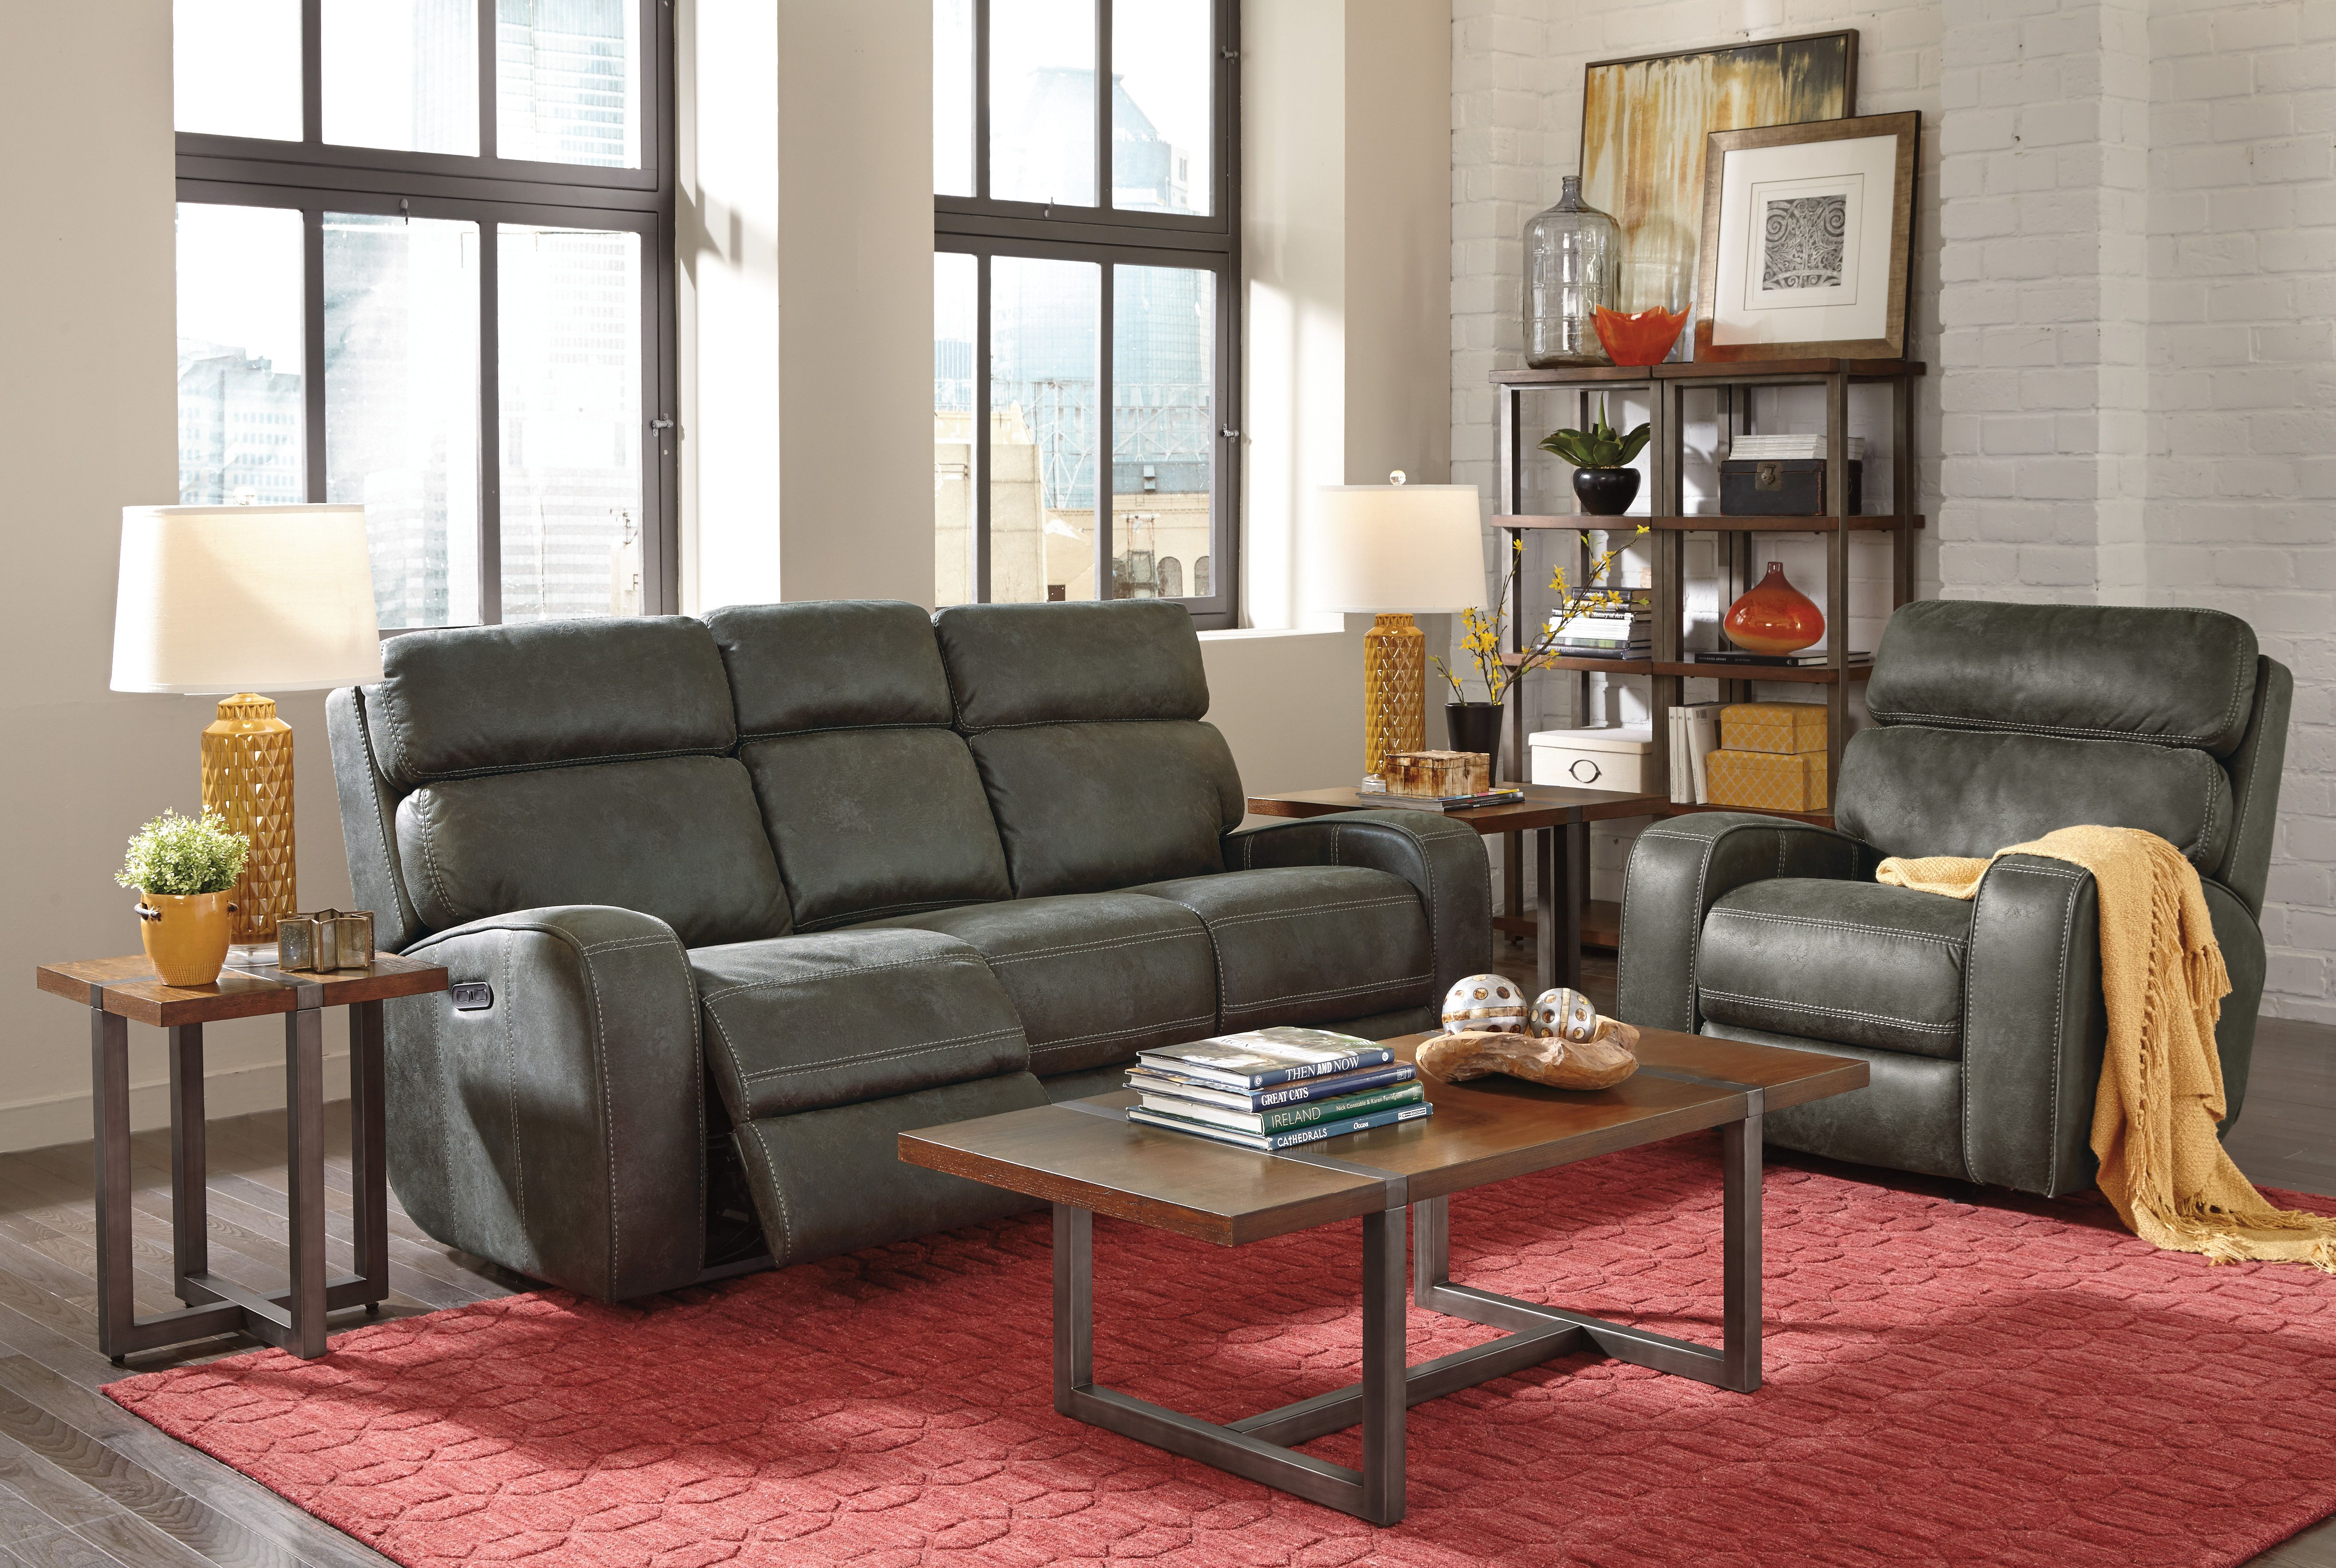 Sensational Flexsteel Tomkins Power Reclining Sofa With Power Headrests Ocoug Best Dining Table And Chair Ideas Images Ocougorg